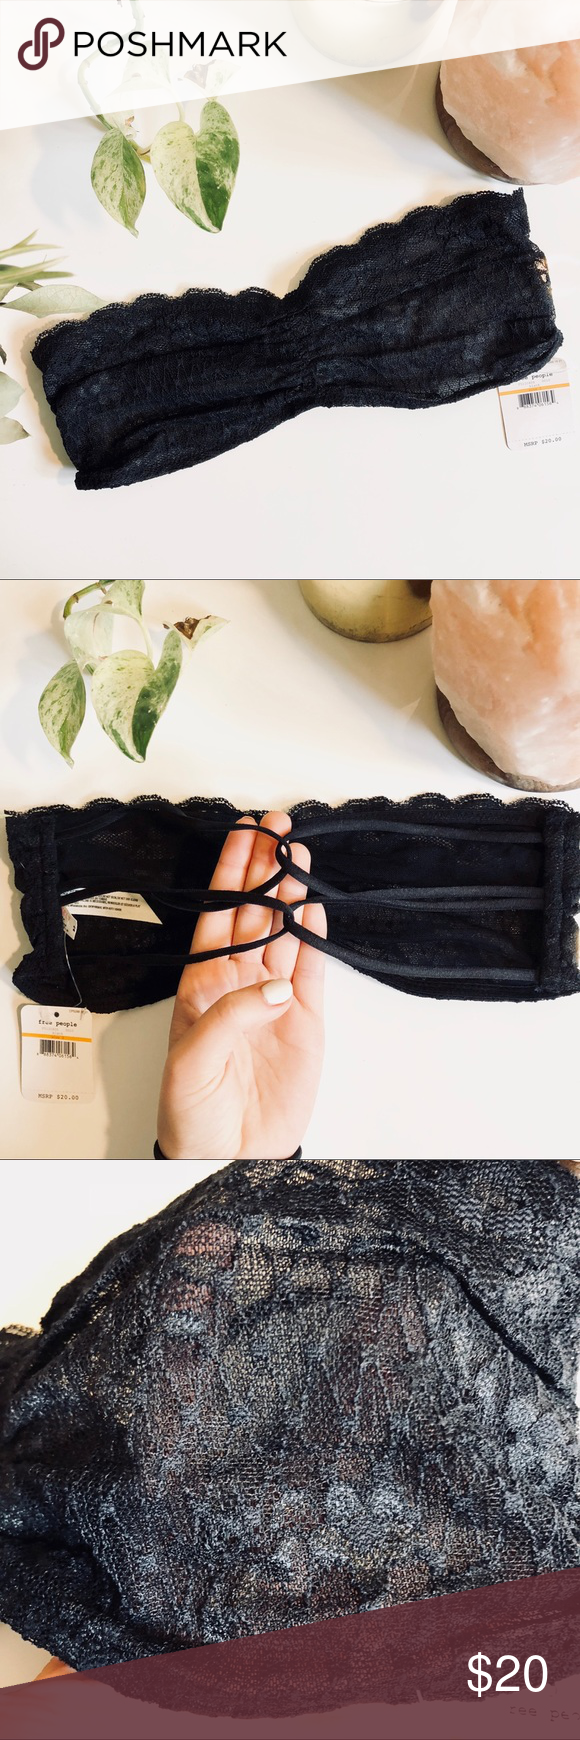 821c90b015e NWT FREE PEOPLE Black Essential Lace Bandeau Bra New with tags. Currently  available on freepeople